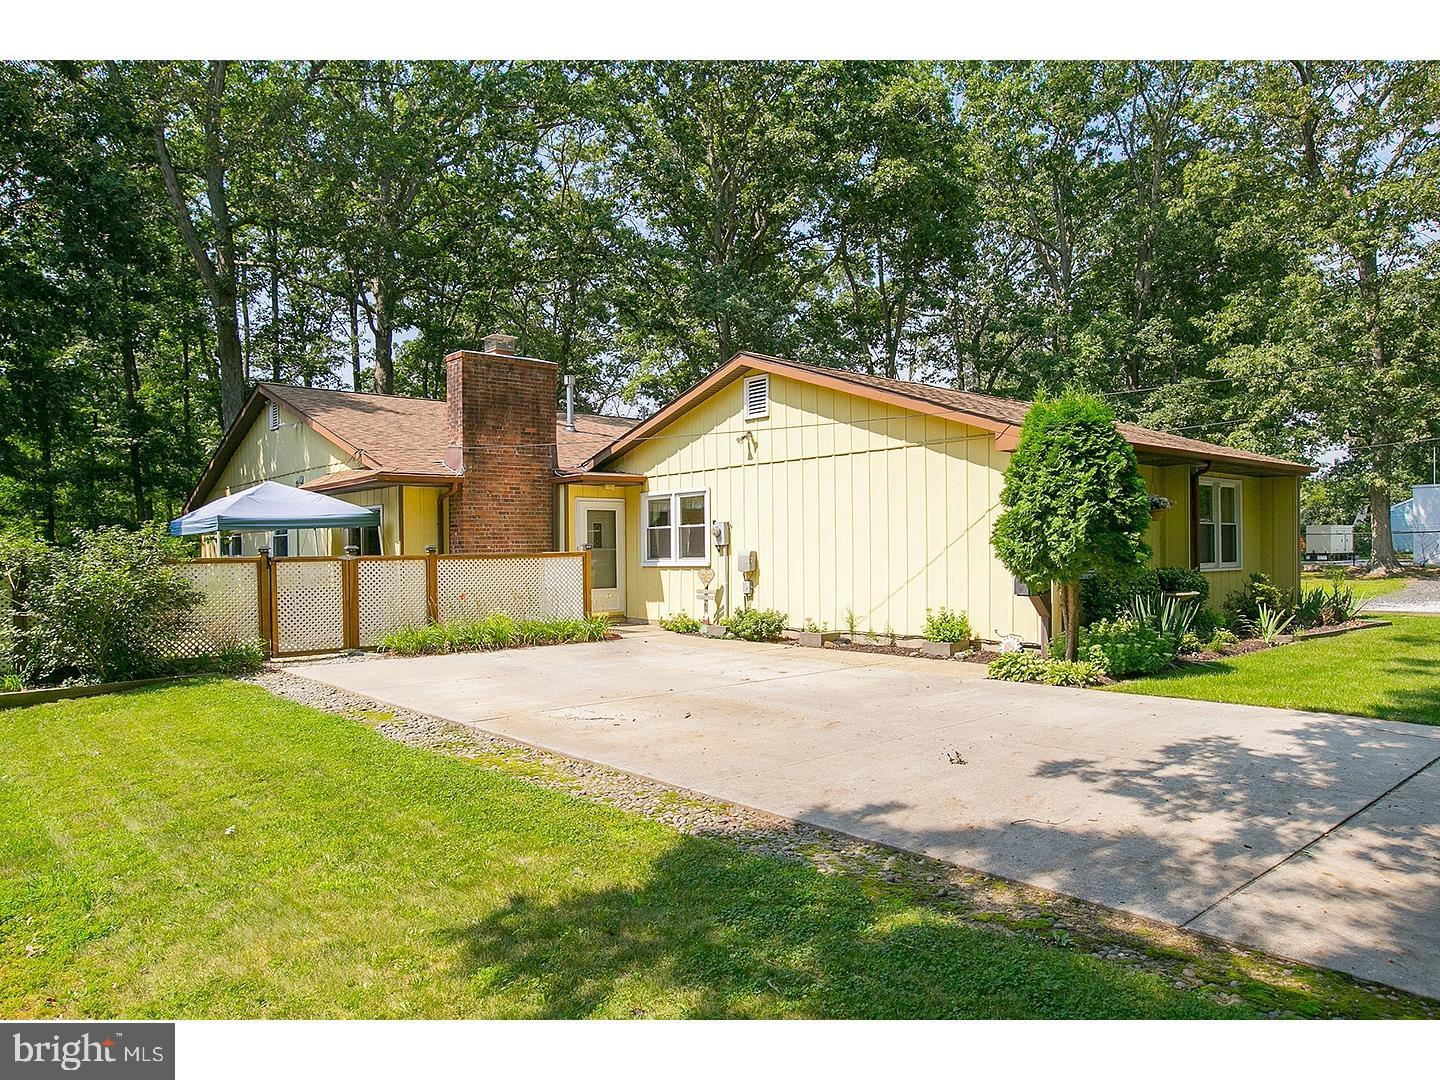 Sensational one floor home under 2 miles from Rowan University situated on a quiet, tree lined dead